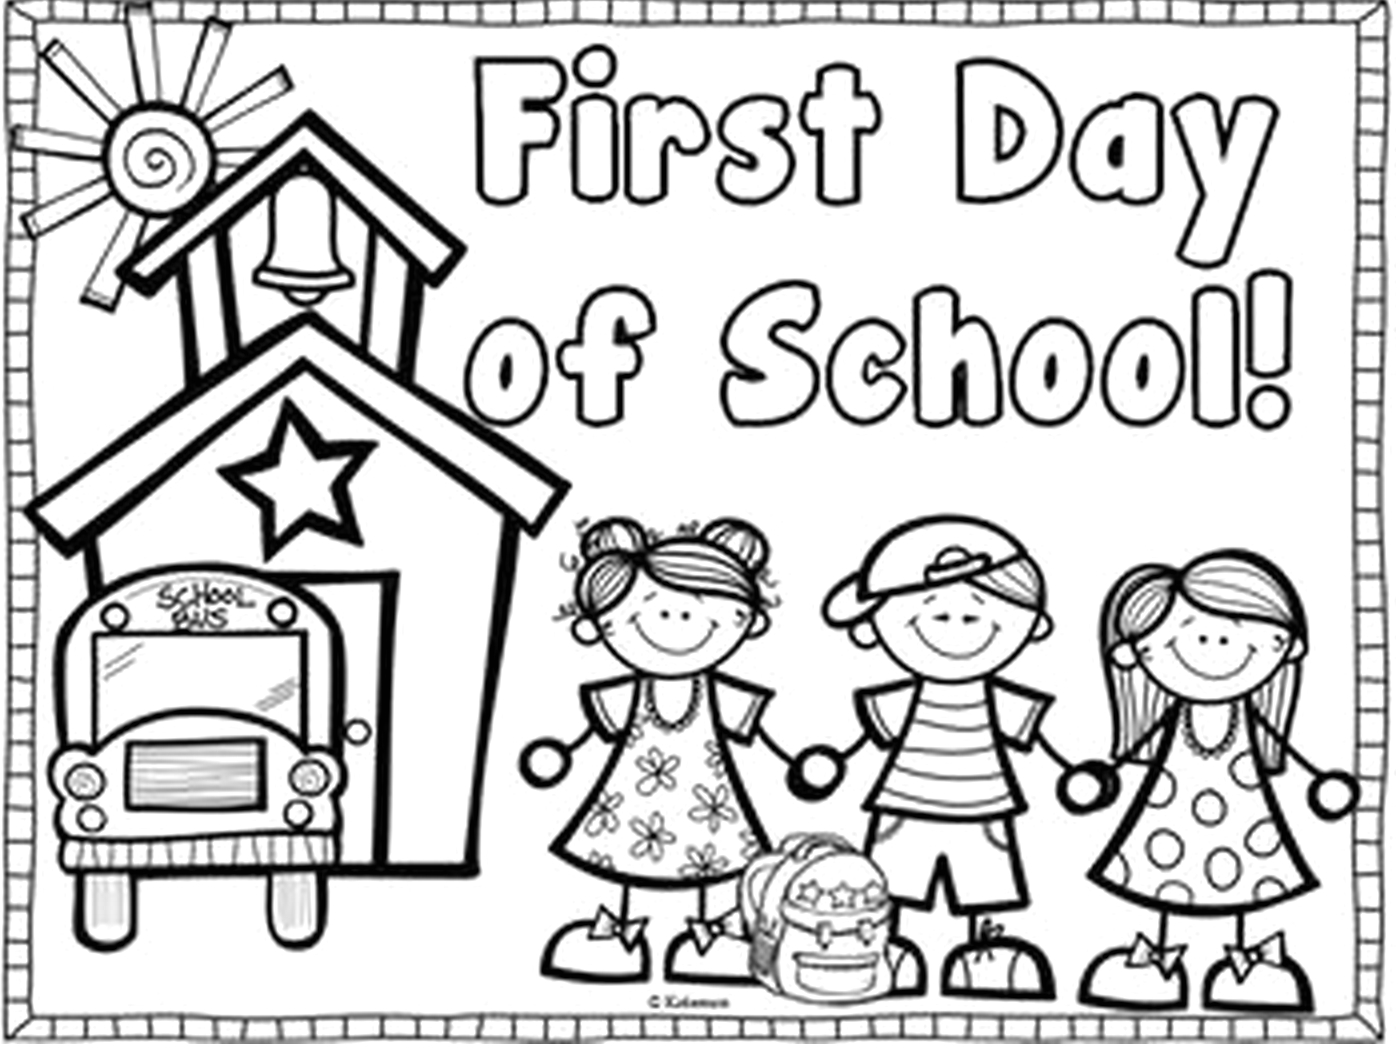 First Day Of School Coloring Pages Free Printable First Day Of School Coloring Page